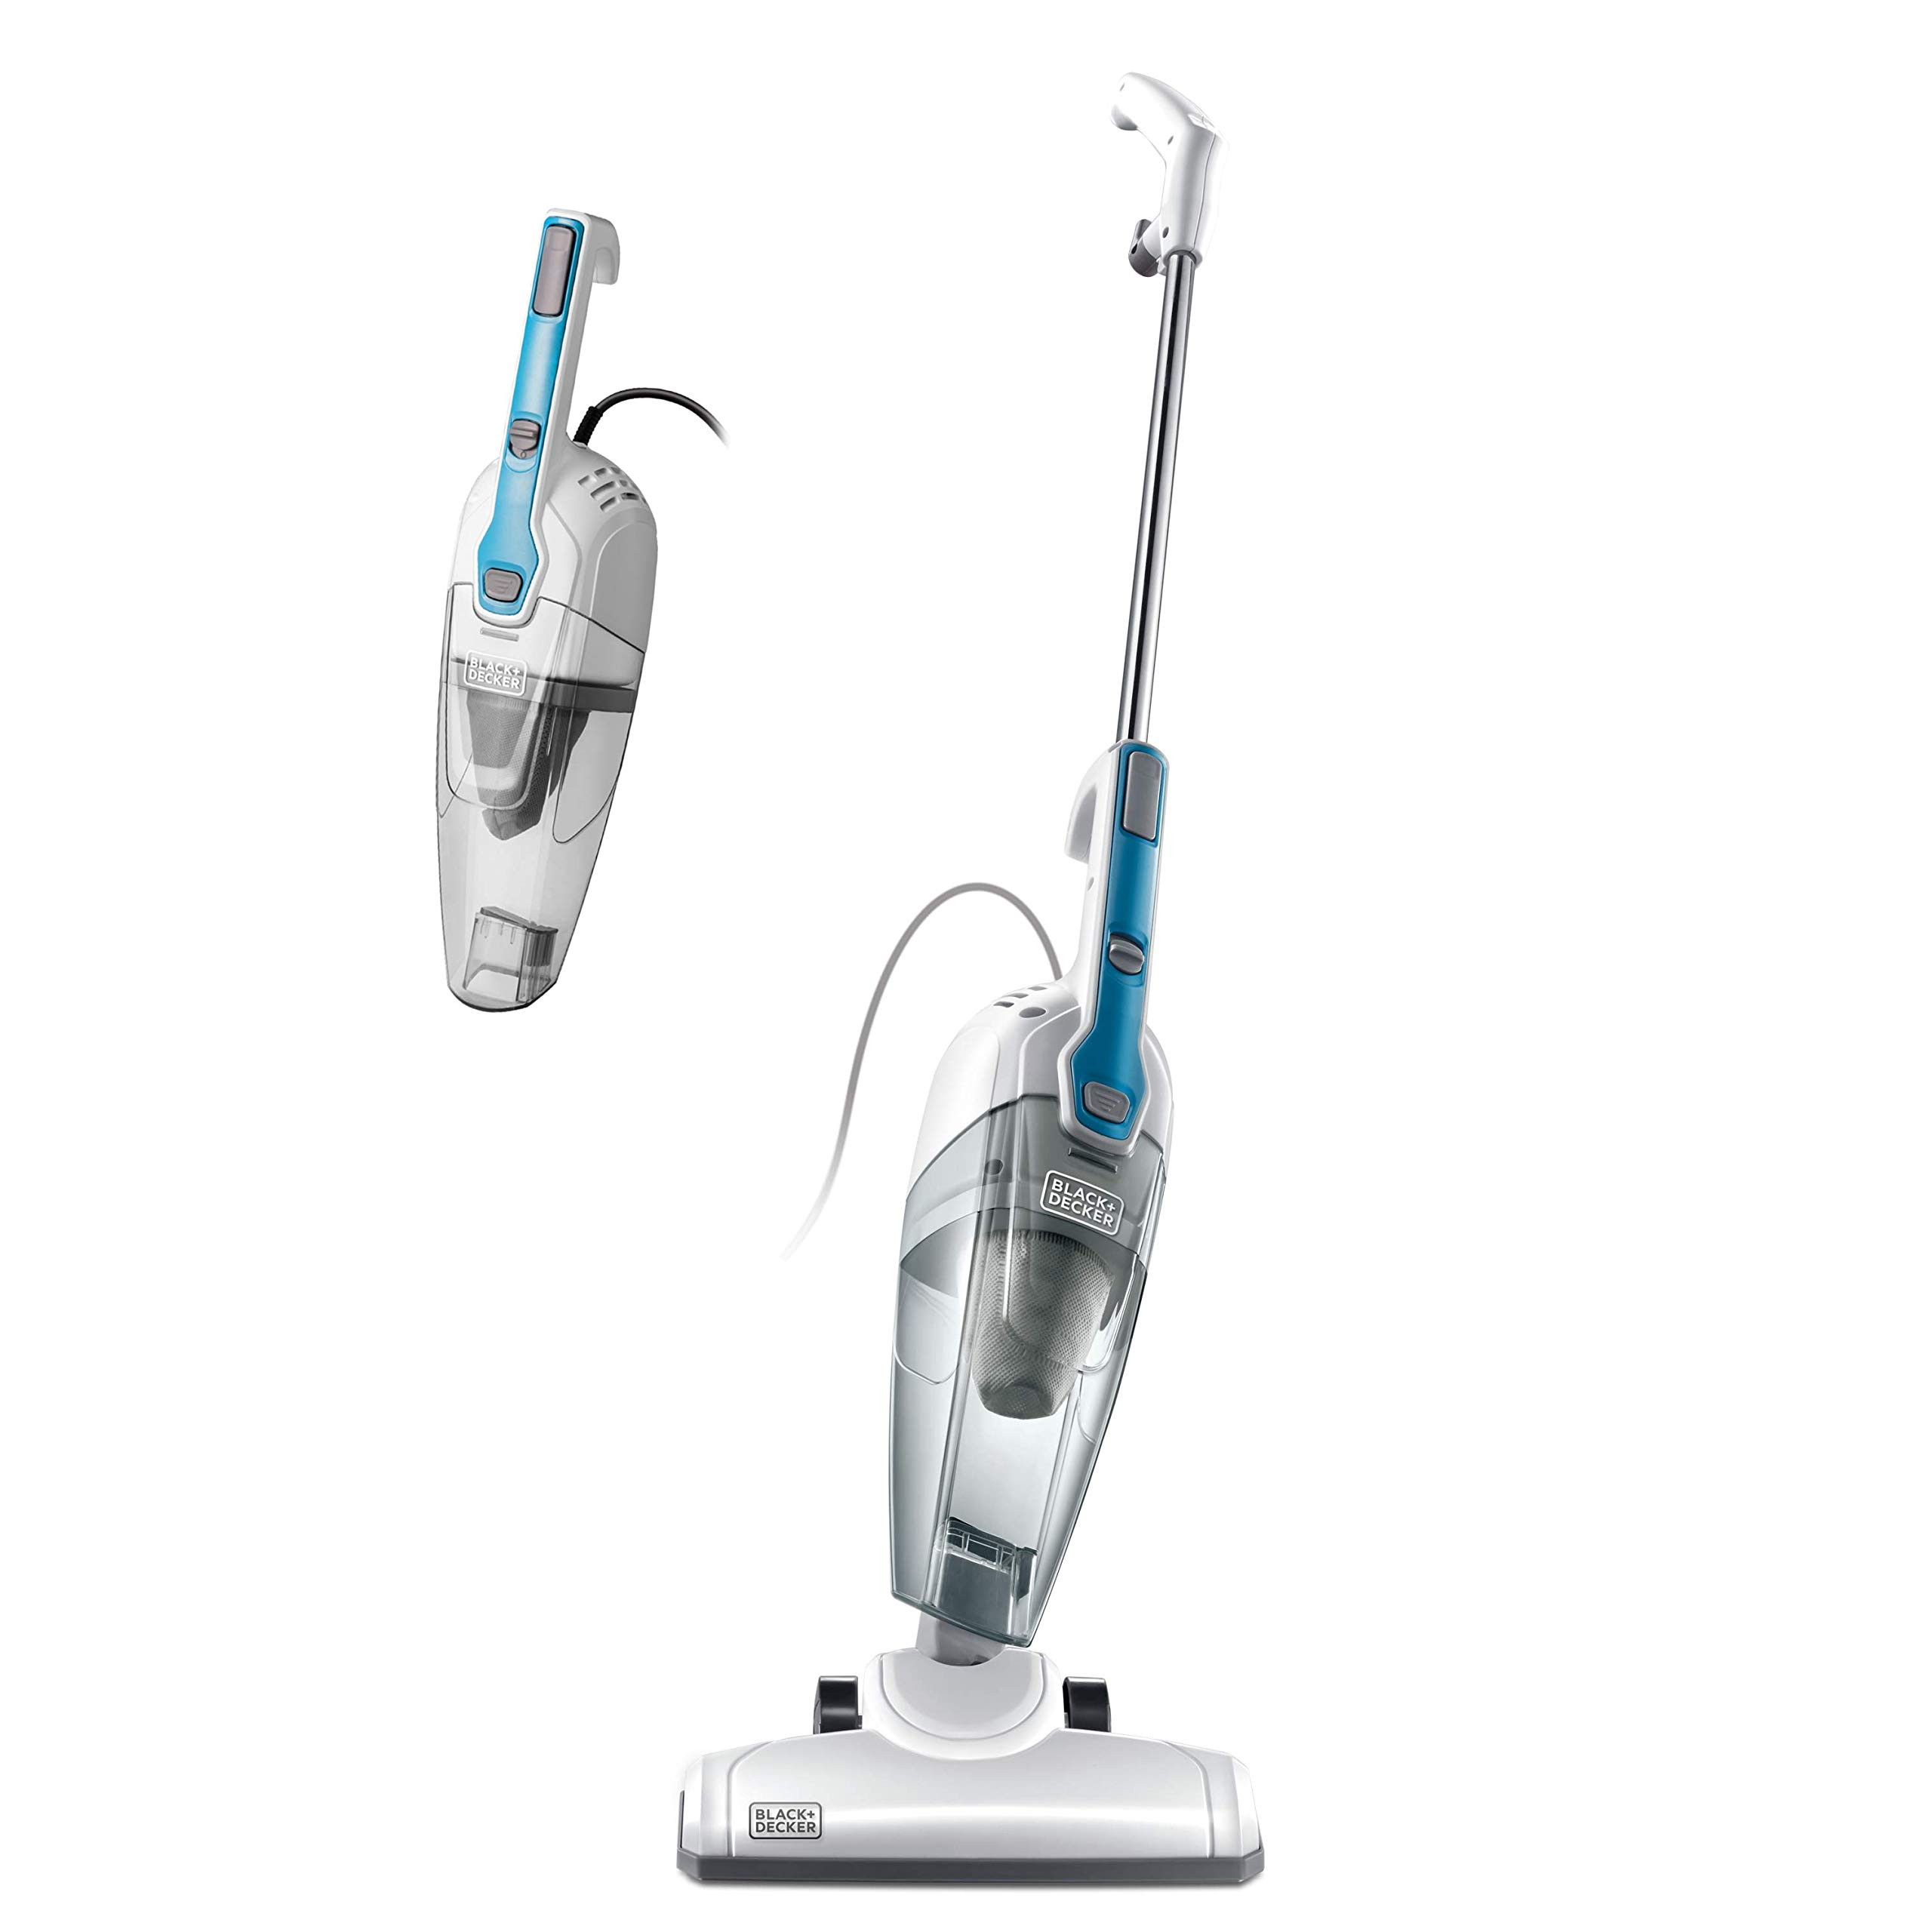 Black & Decker BDST1609 3-in-1 Corded Lightweight Handheld Cleaner & Stick Vacuum Cleaner, White with Aqua Blue by BLACK+DECKER